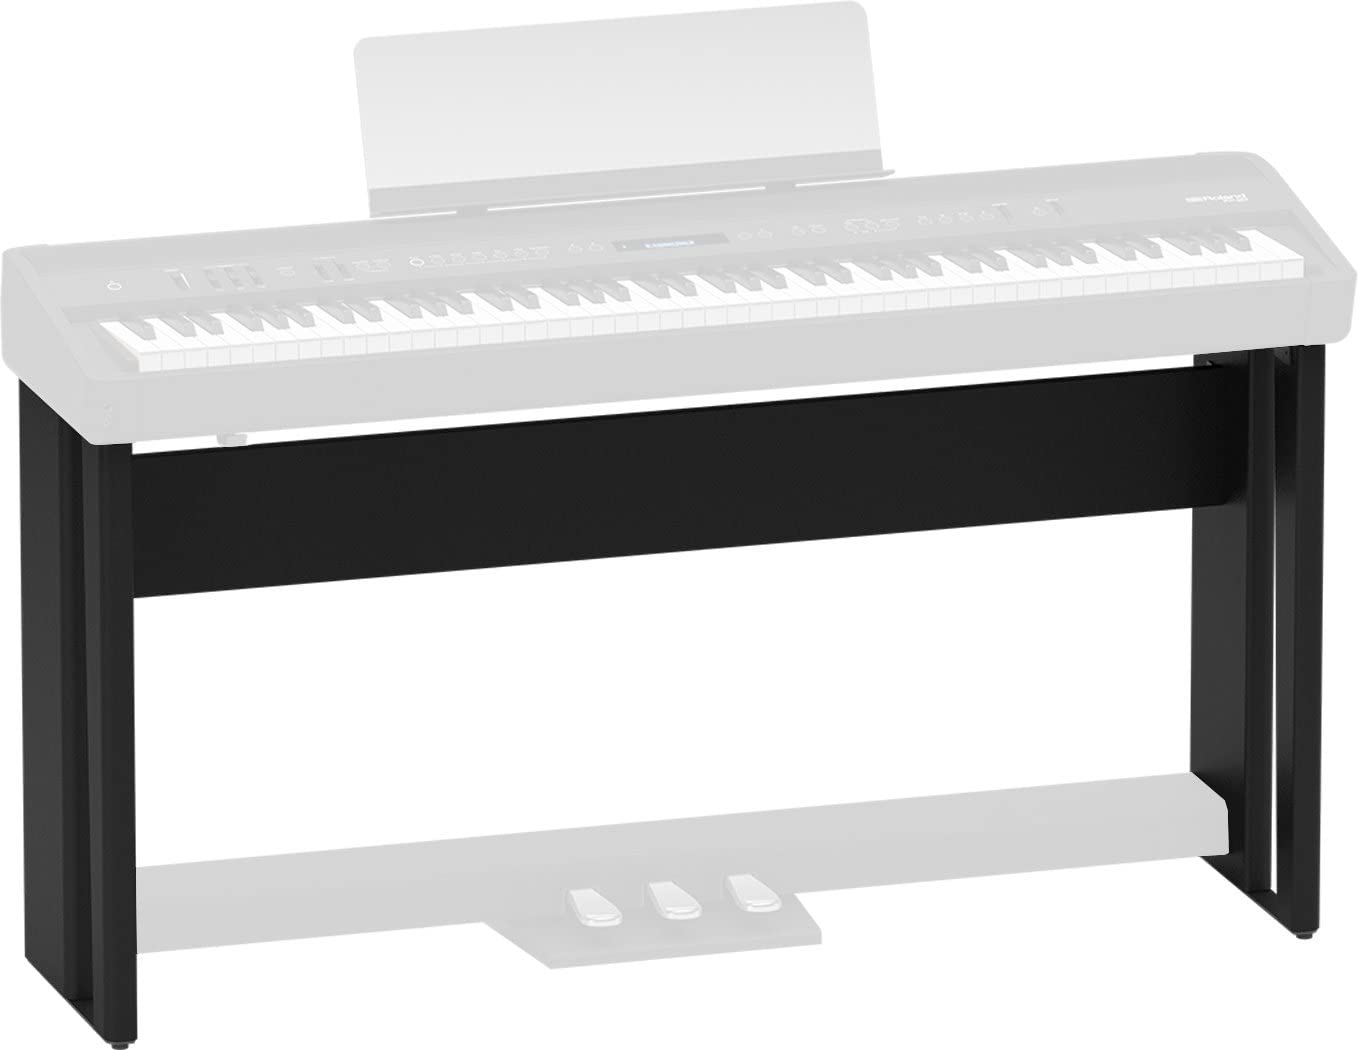 Roland KSC-90 Electronic Keyboard Stand for FP-90, Black